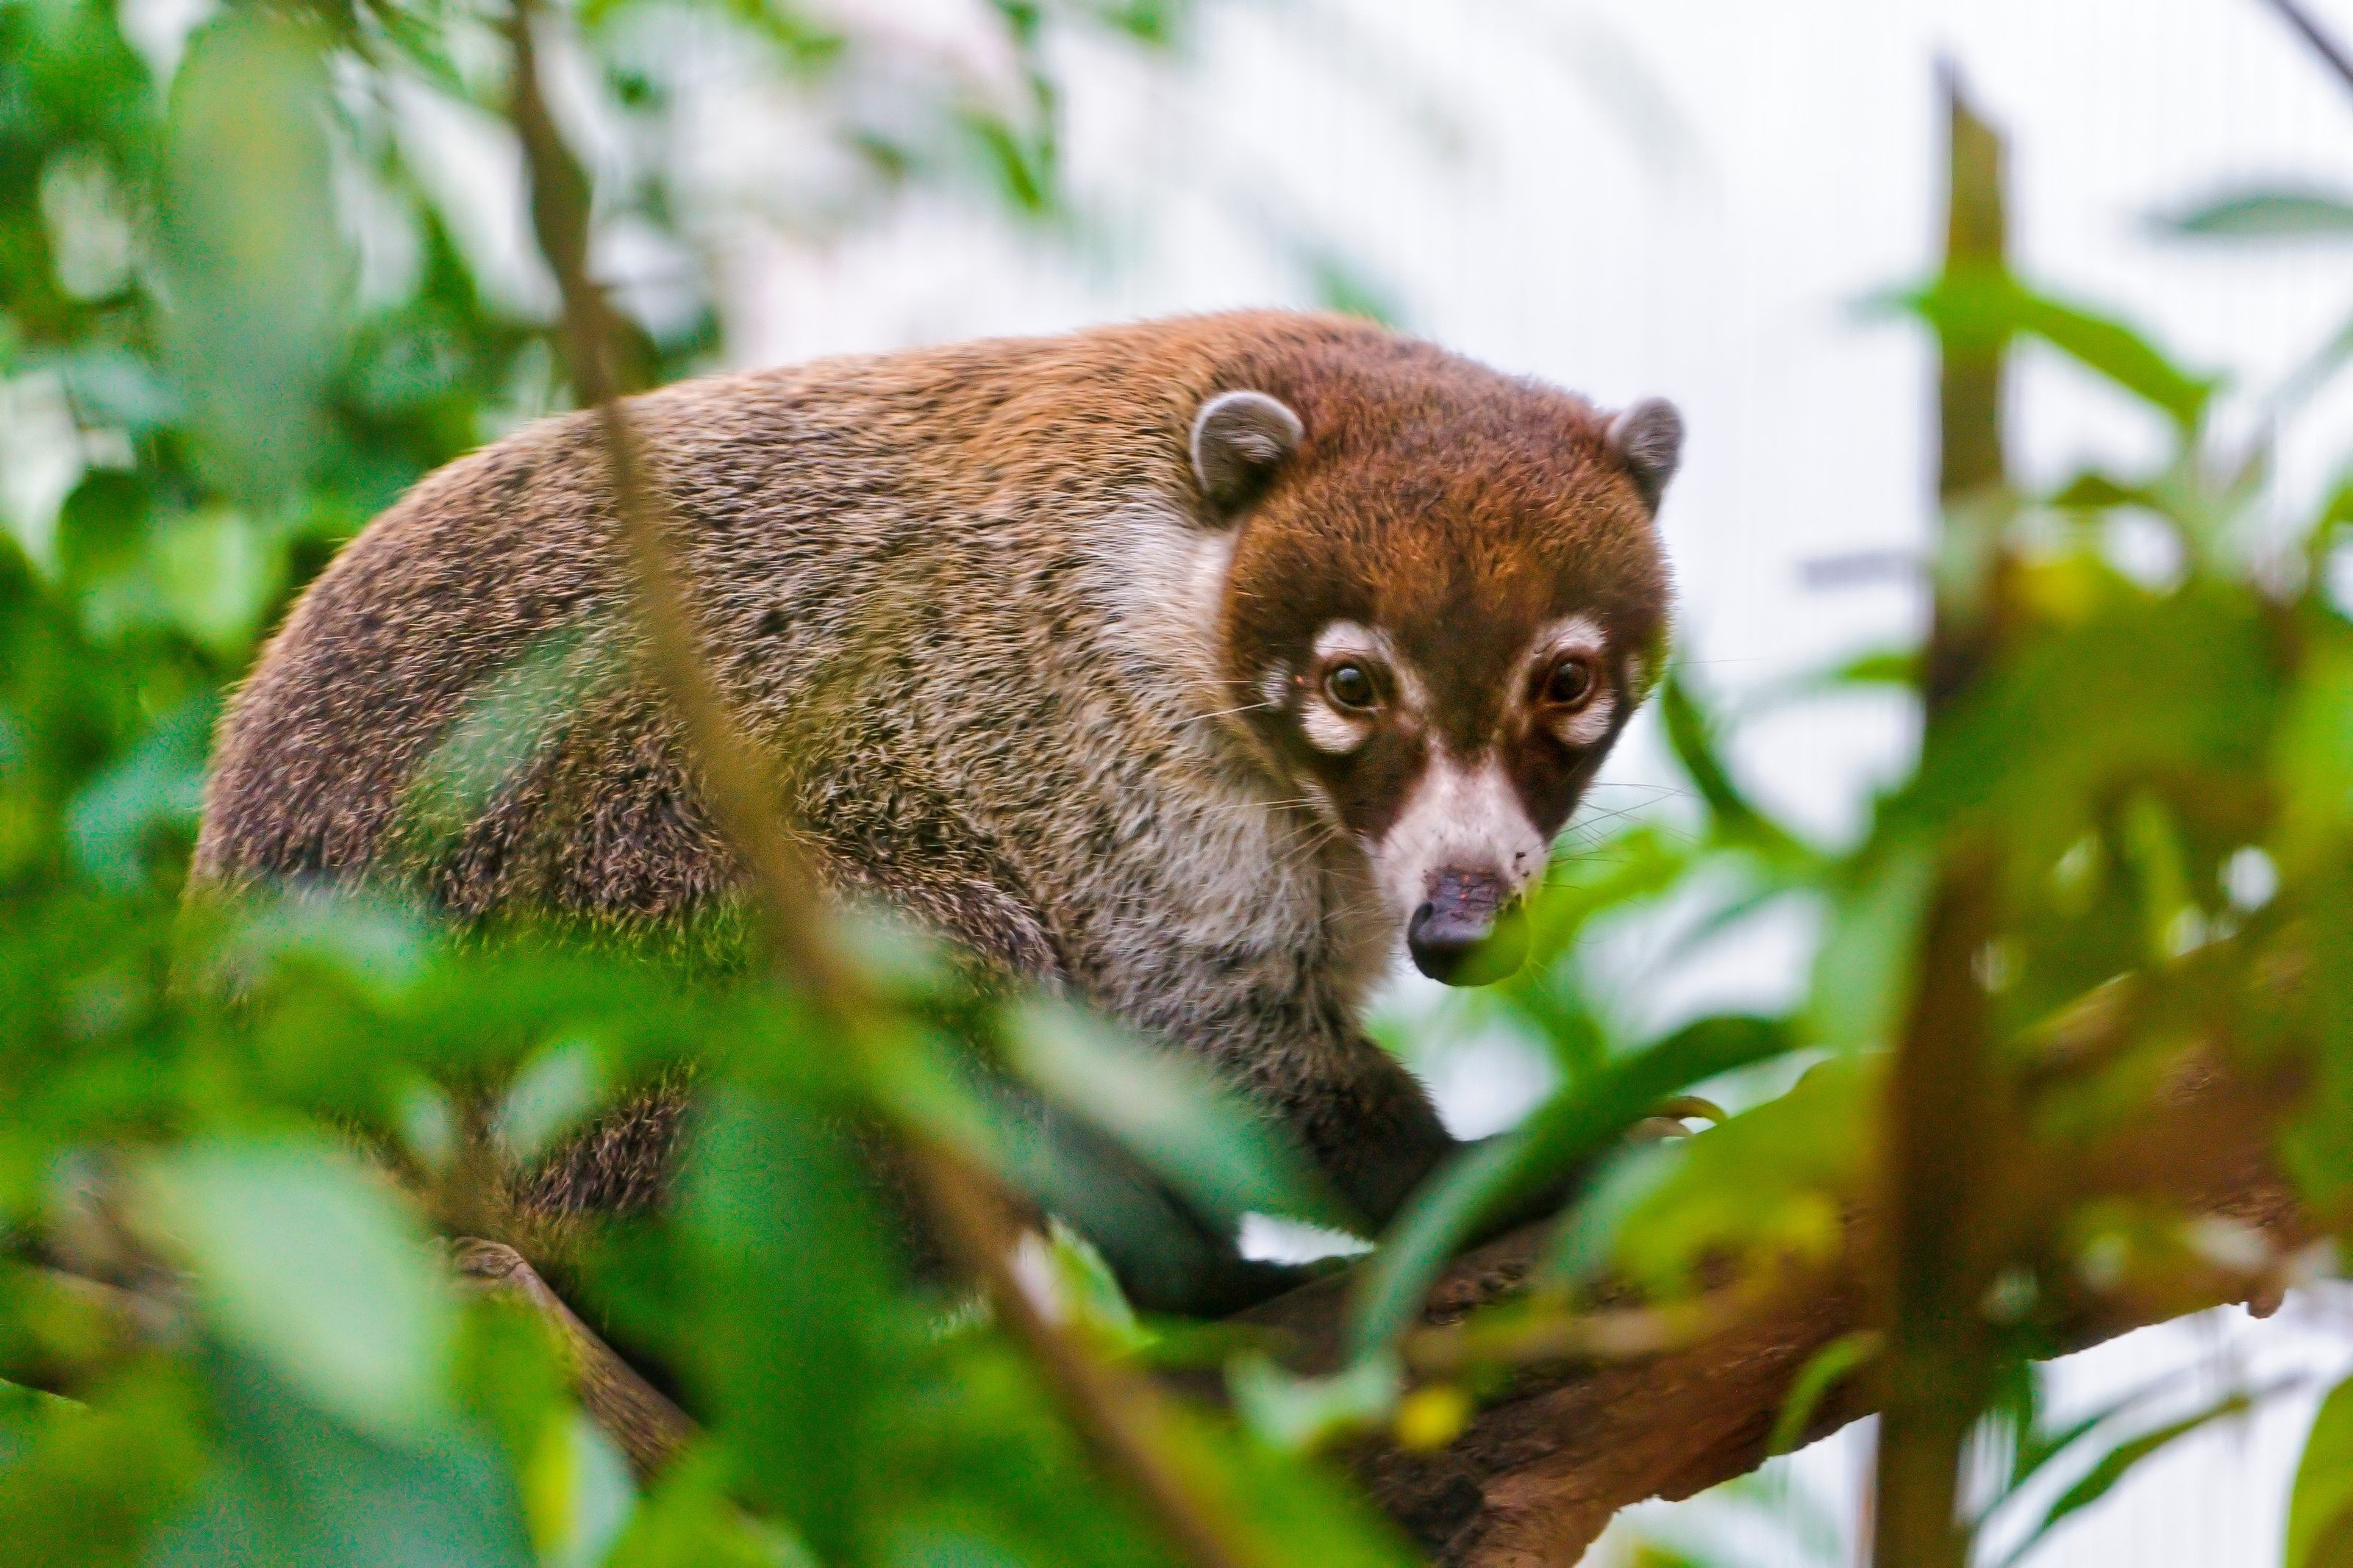 Tiger Animal Wallpaper 3 Coati Hd Wallpapers Background Images Wallpaper Abyss